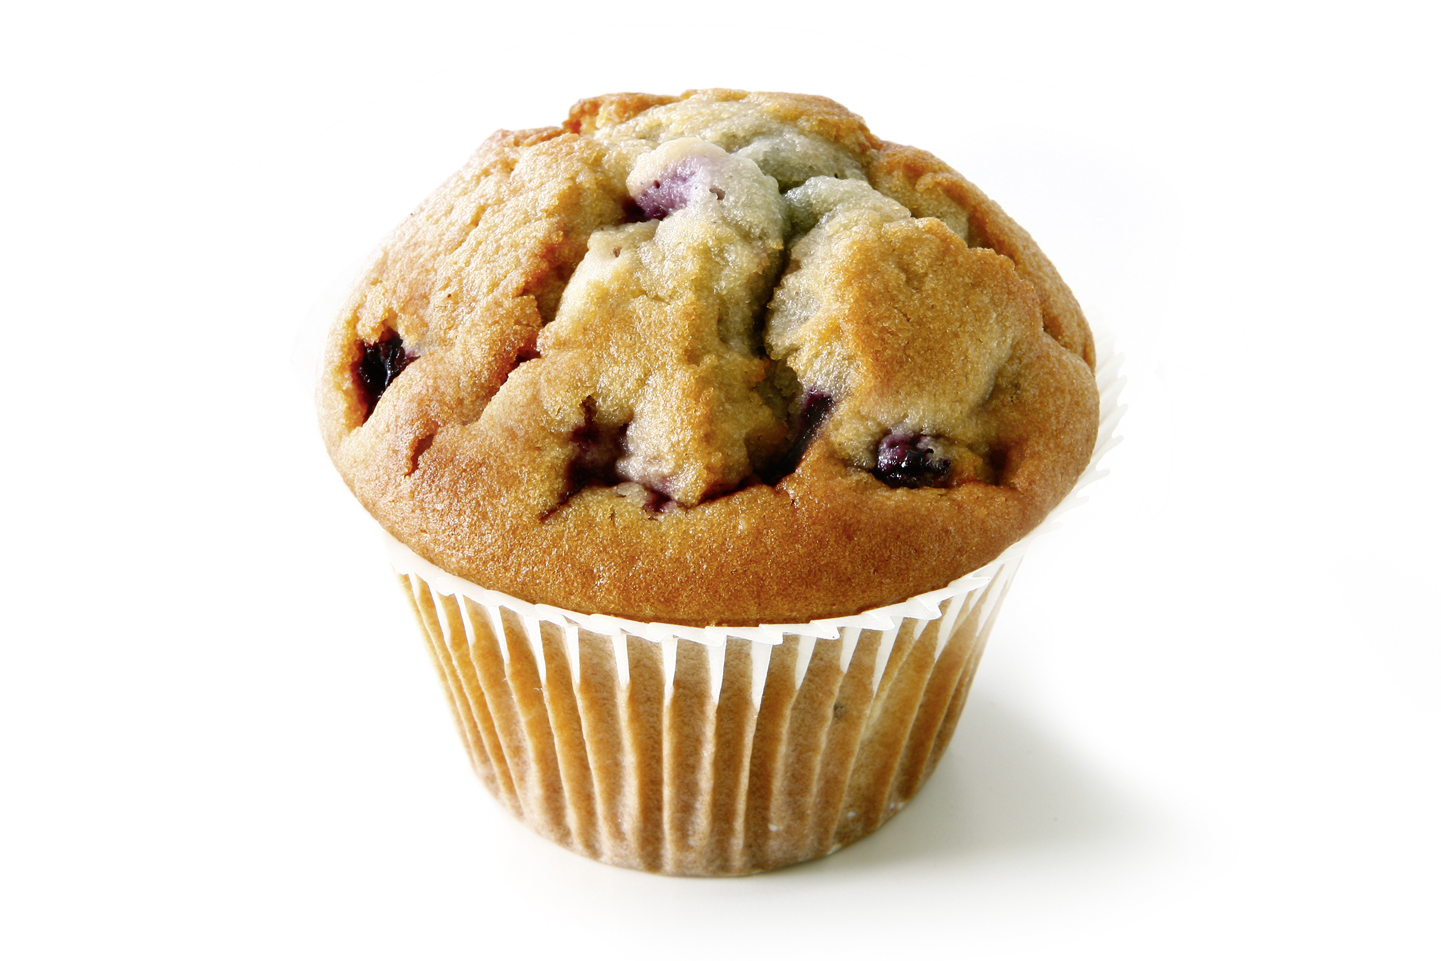 Muffin Blueberry - Small batter cake with 10% wild blueberries/ thaw only